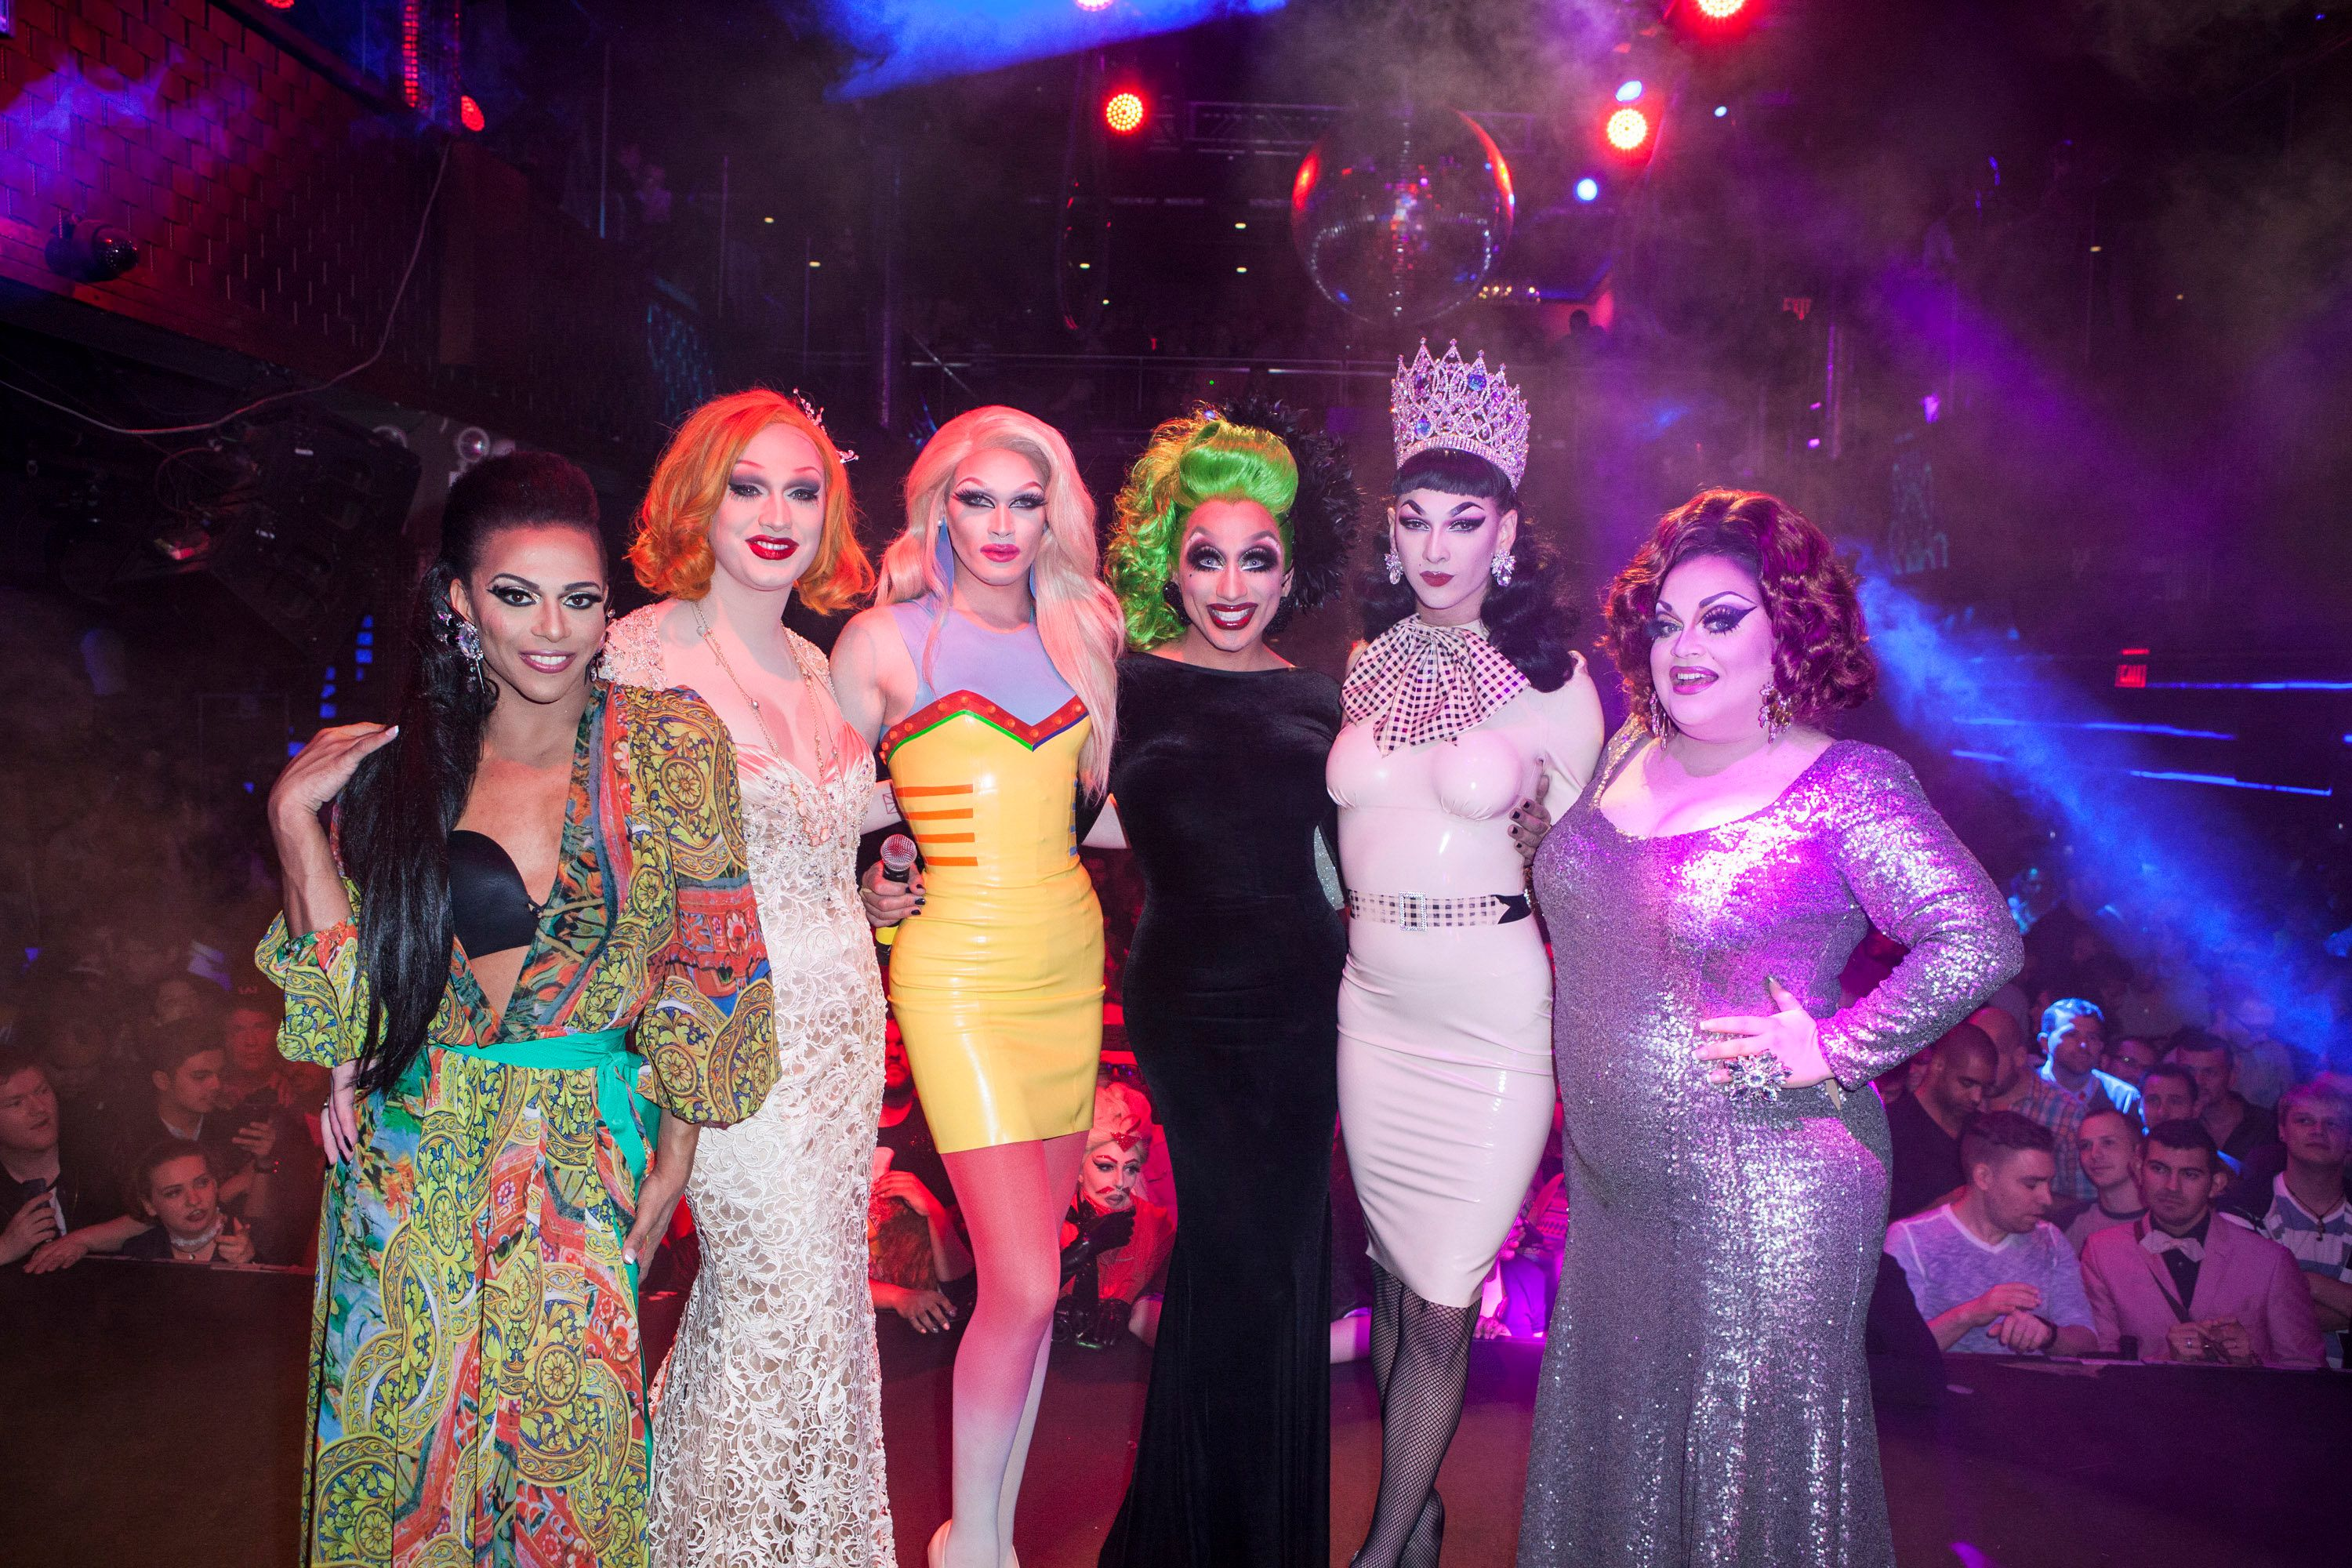 NEW YORK, NY - JUNE 01:  Cast of 'RuPaul's Drag Race' attends Season 7 Finale And Coronation at Stage48 on June 1, 2015 in New York City.  (Photo by Santiago Felipe/FilmMagic)